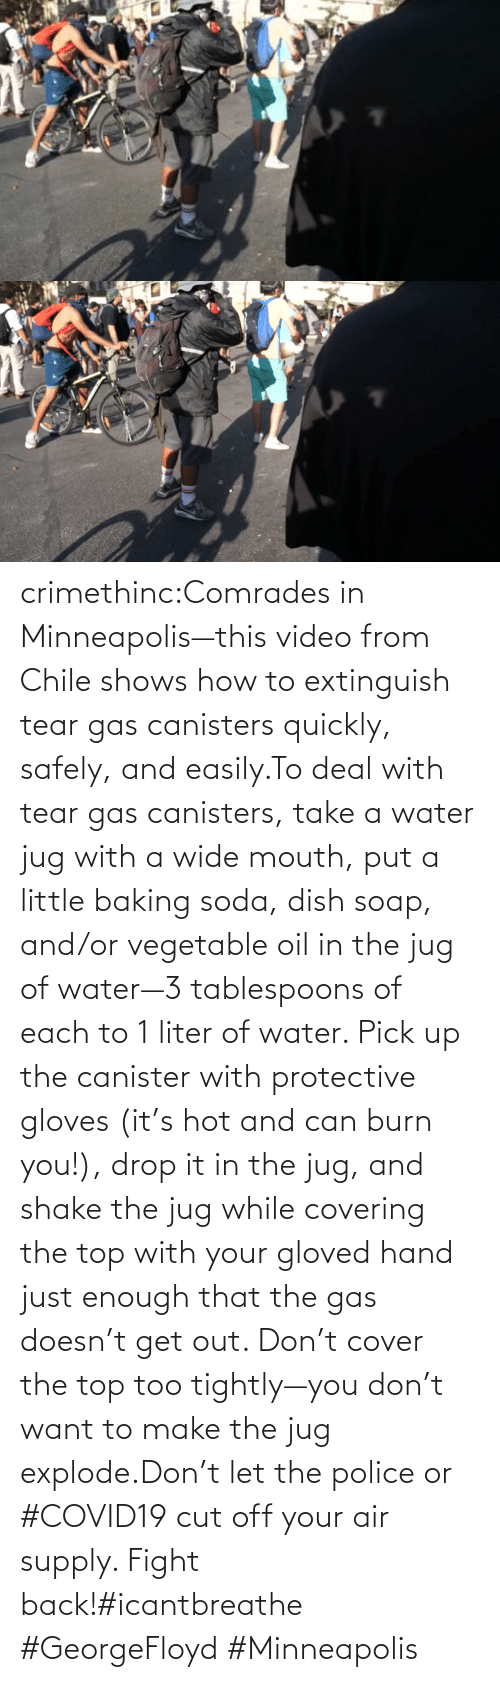 soda: crimethinc:Comrades in Minneapolis—this video from Chile shows how to extinguish tear gas canisters quickly, safely, and easily.To deal with tear gas canisters, take a water jug with a wide mouth, put a little baking soda, dish soap, and/or vegetable oil in the jug of water—3 tablespoons of each to 1 liter of water. Pick up the canister with protective gloves (it's hot and can burn you!), drop it in the jug, and shake the jug while covering the top with your gloved hand just enough that the gas doesn't get out. Don't cover the top too tightly—you don't want to make the jug explode.Don't let the police or #COVID19 cut off your air supply. Fight back!#icantbreathe #GeorgeFloyd #Minneapolis